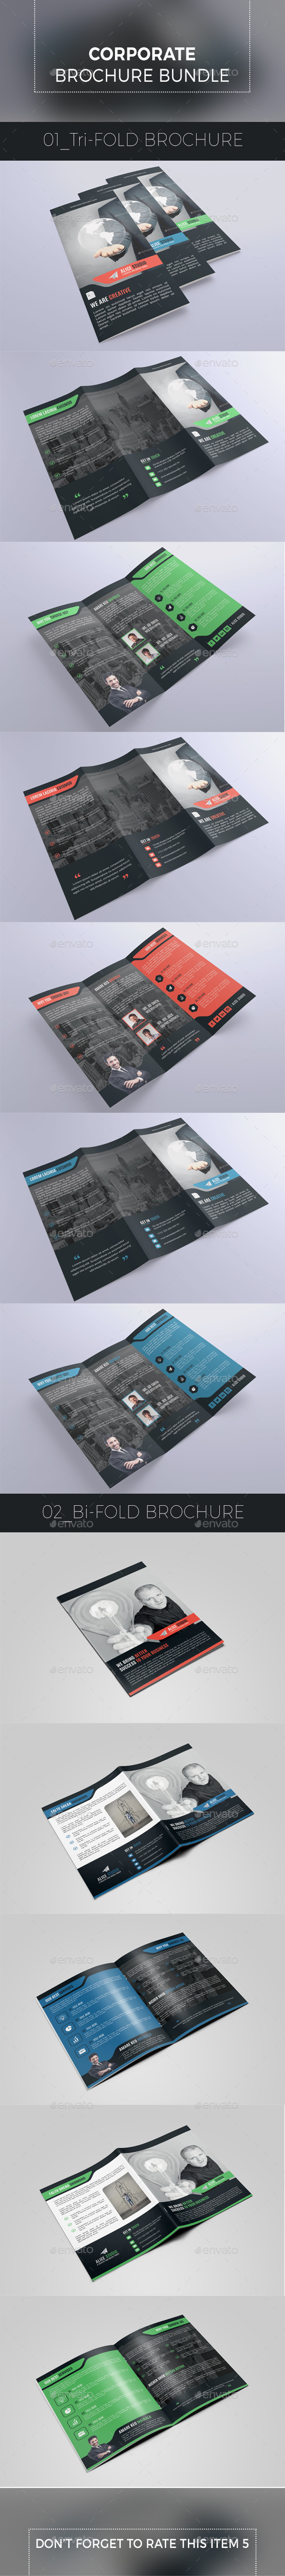 Corporate Brochure Bundle 2 in 1 - Corporate Brochures